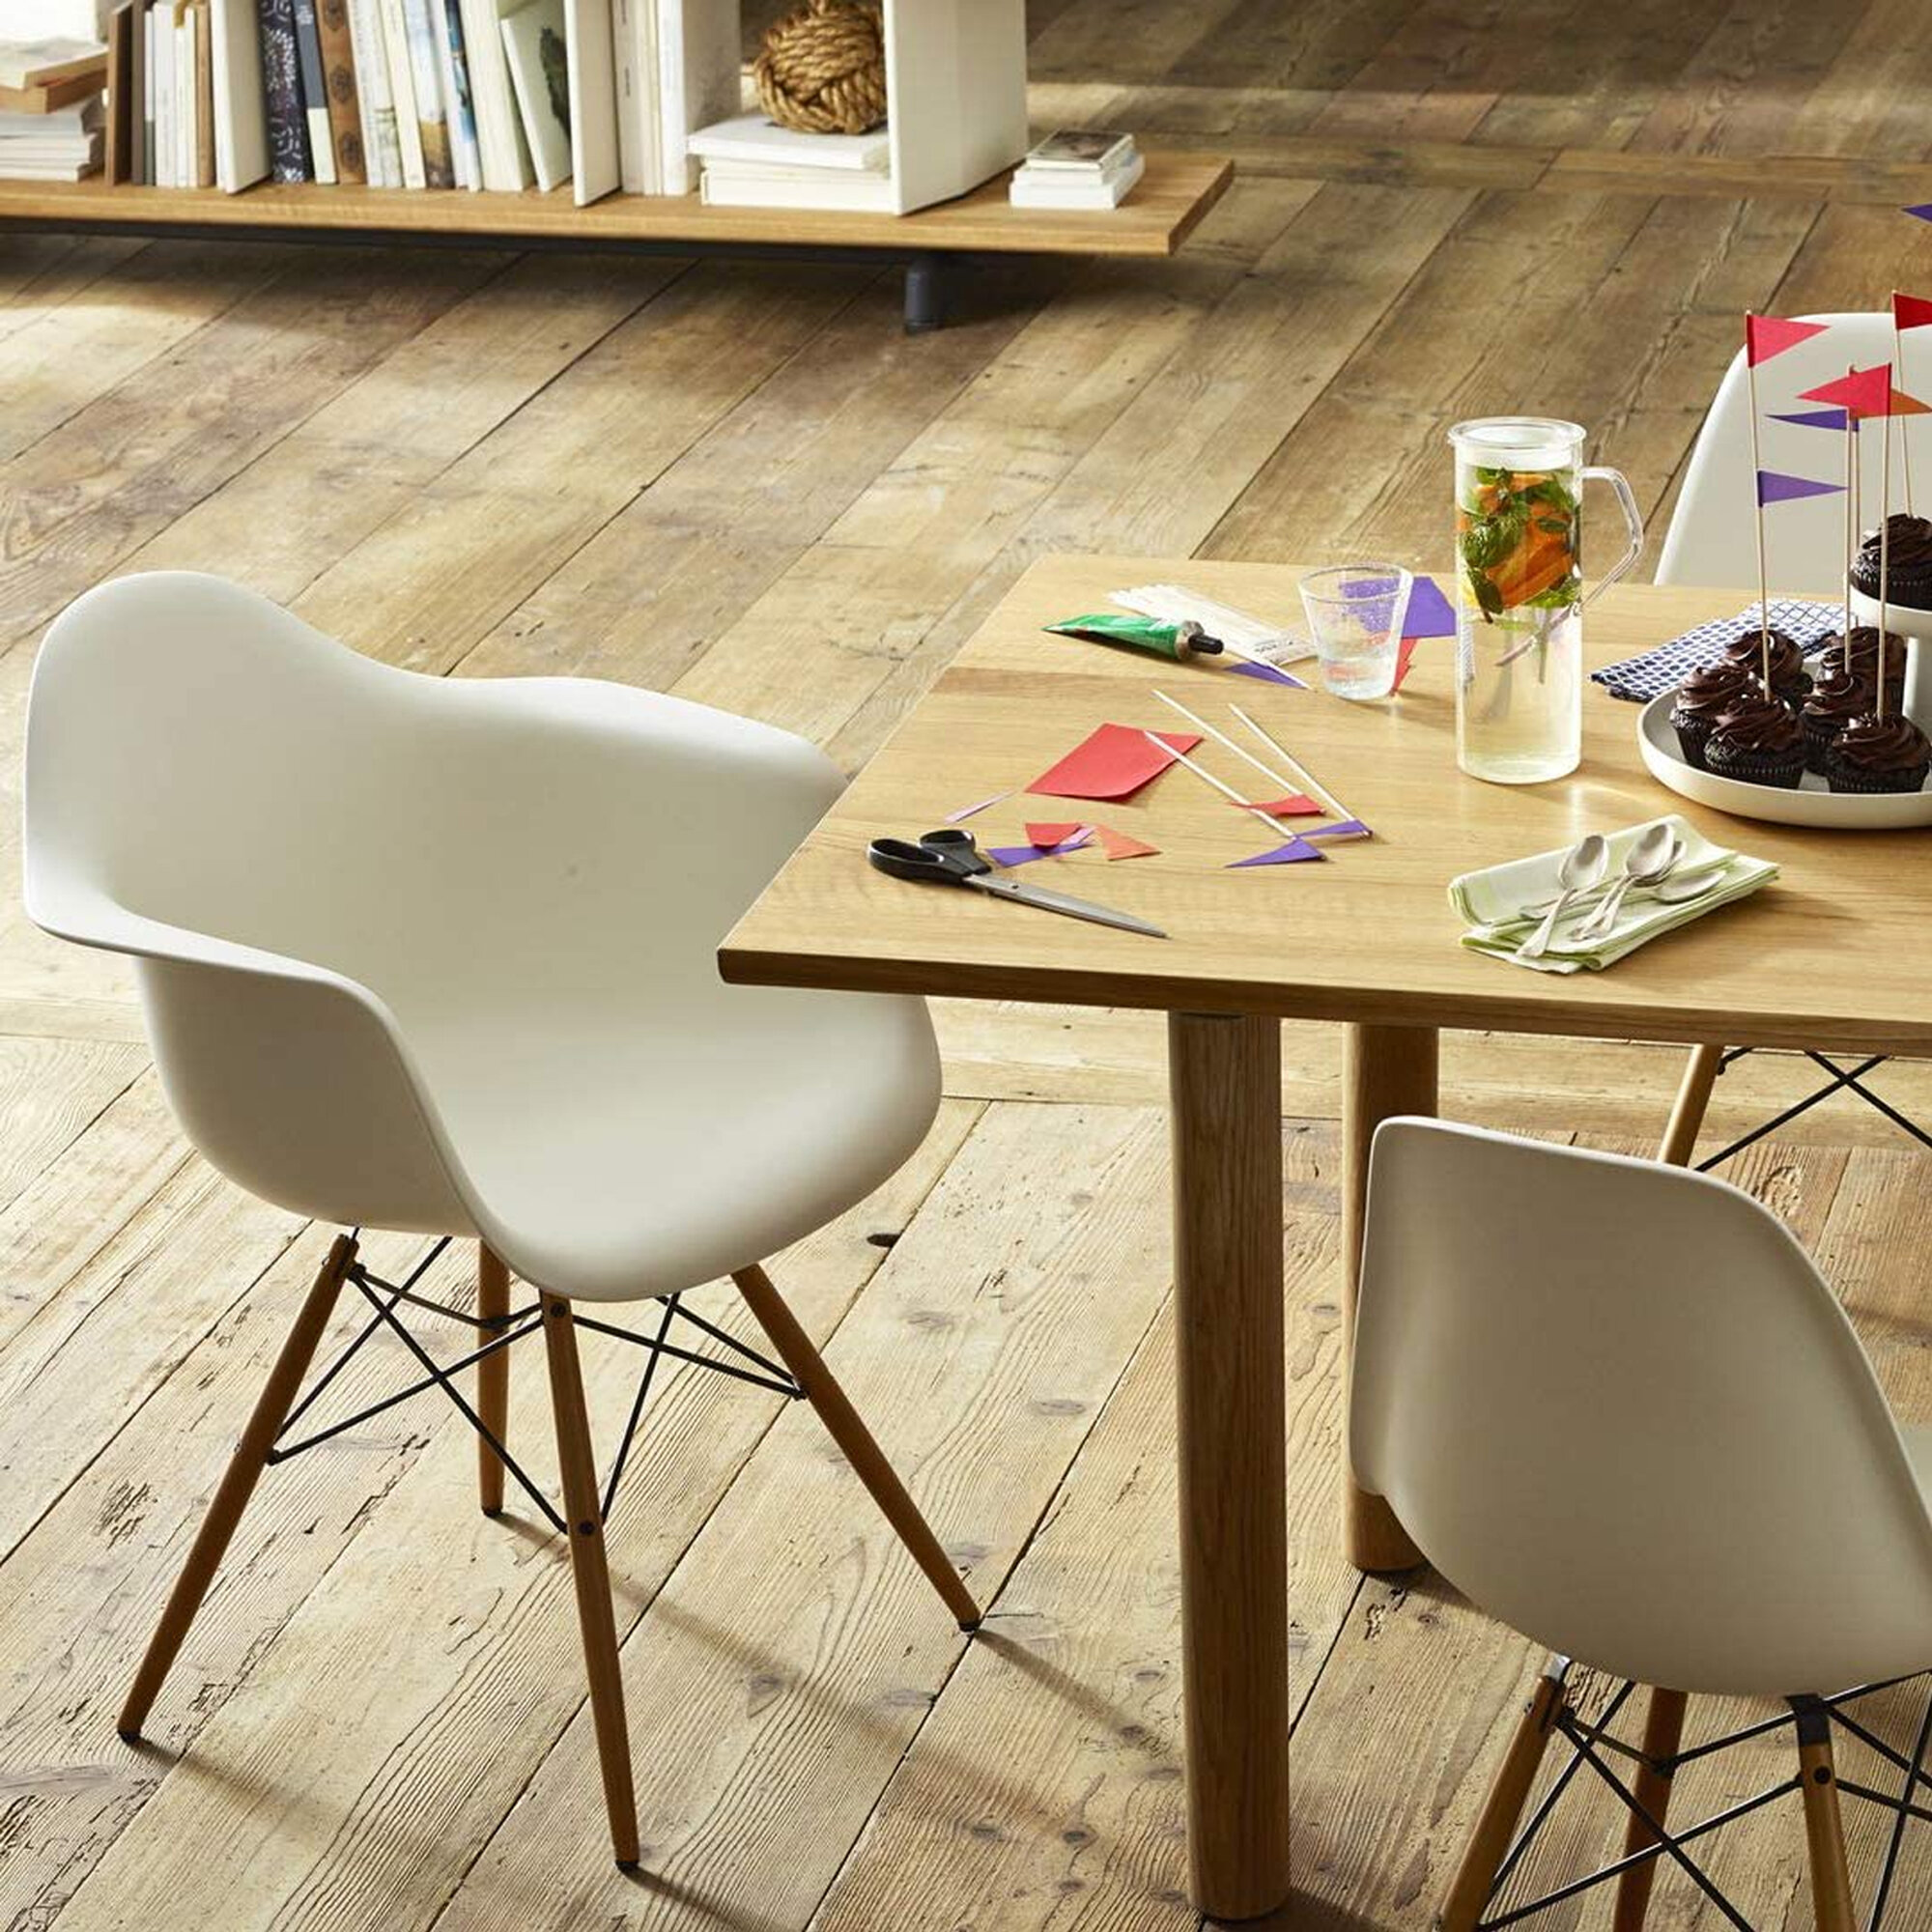 George Oliver Set Of 12 Modern Eames Style Dining Chair Mid-Century DSW Side  Arm Chair With Natural Wood Legs, Shell Lounge Plastic Armless Chair For